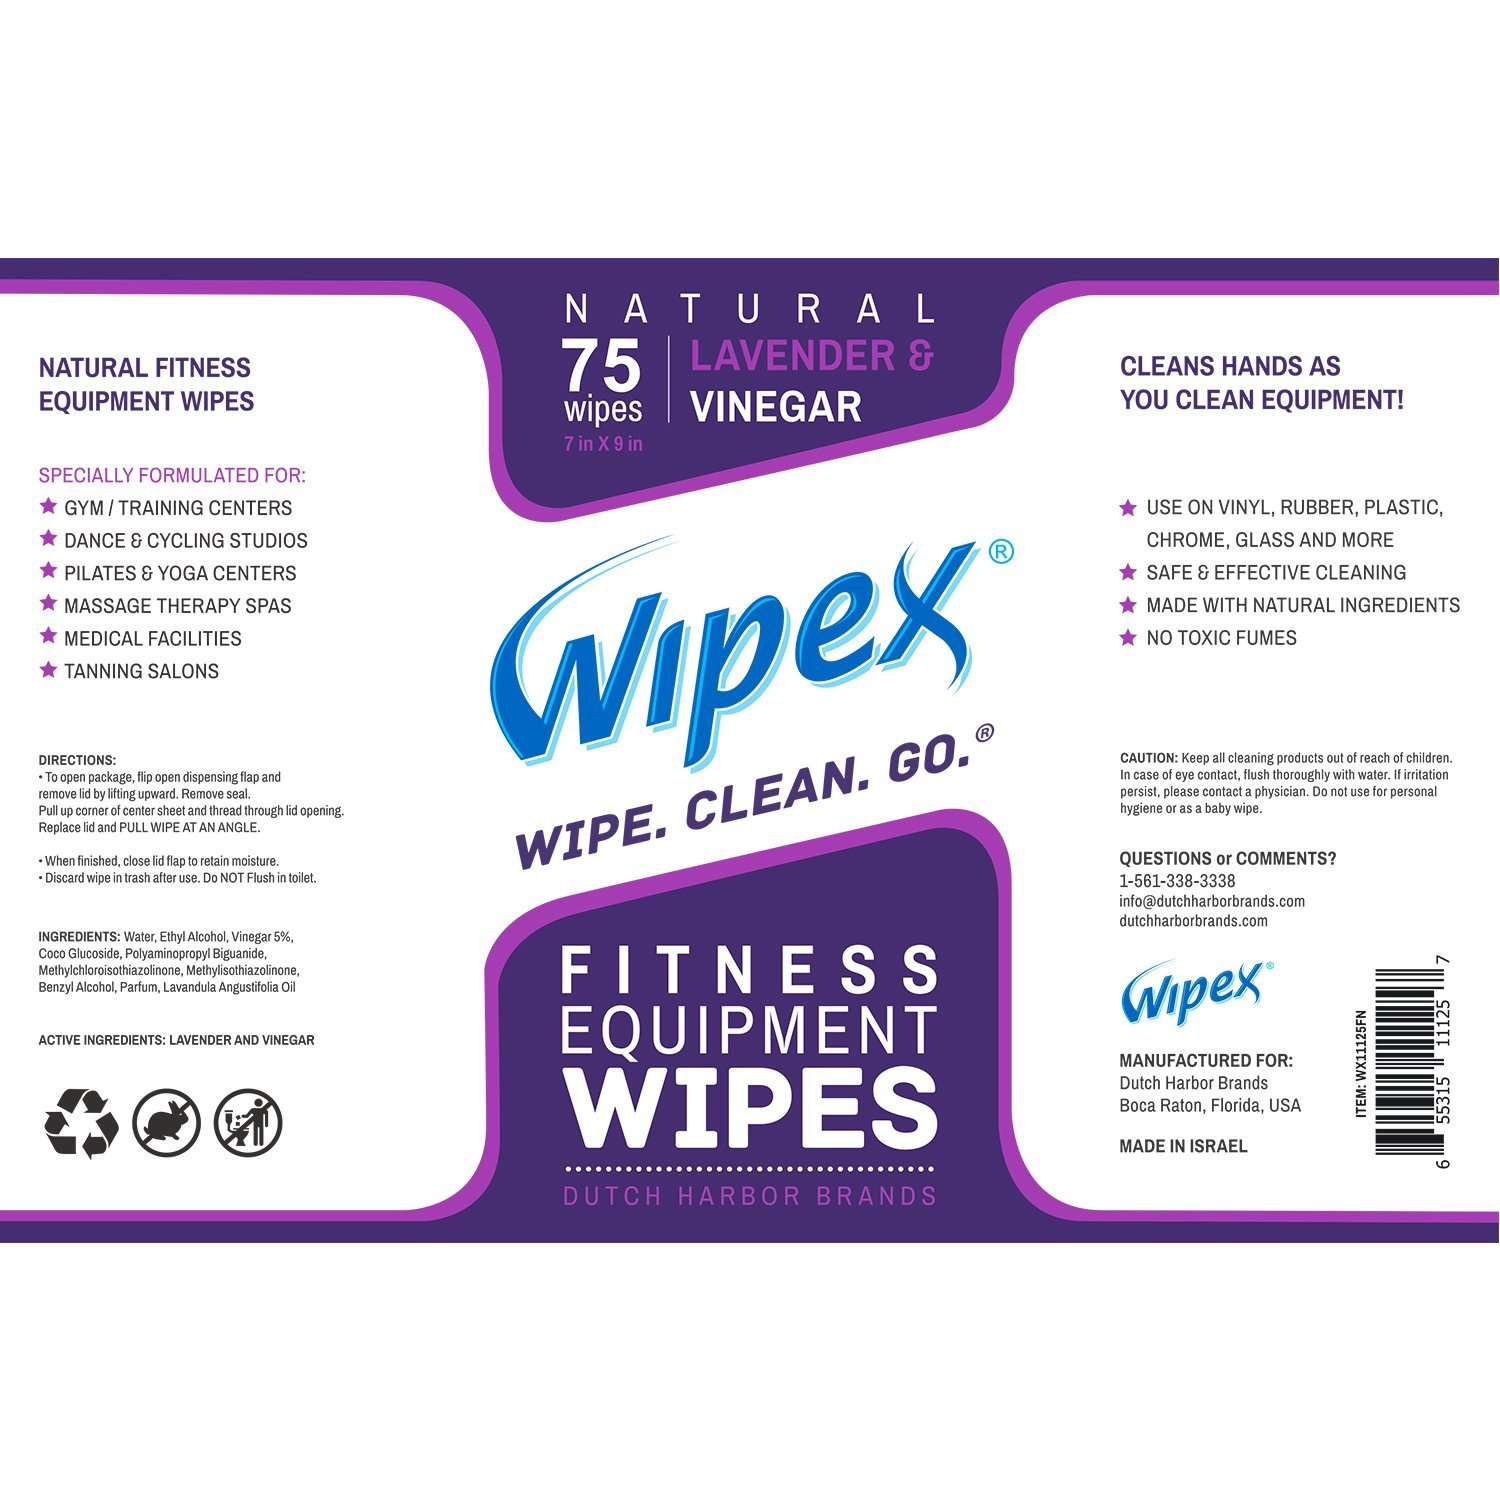 Fitness Equipment Wipes: New & Improved Wipex 75 Natural Personal Fitness Equipment